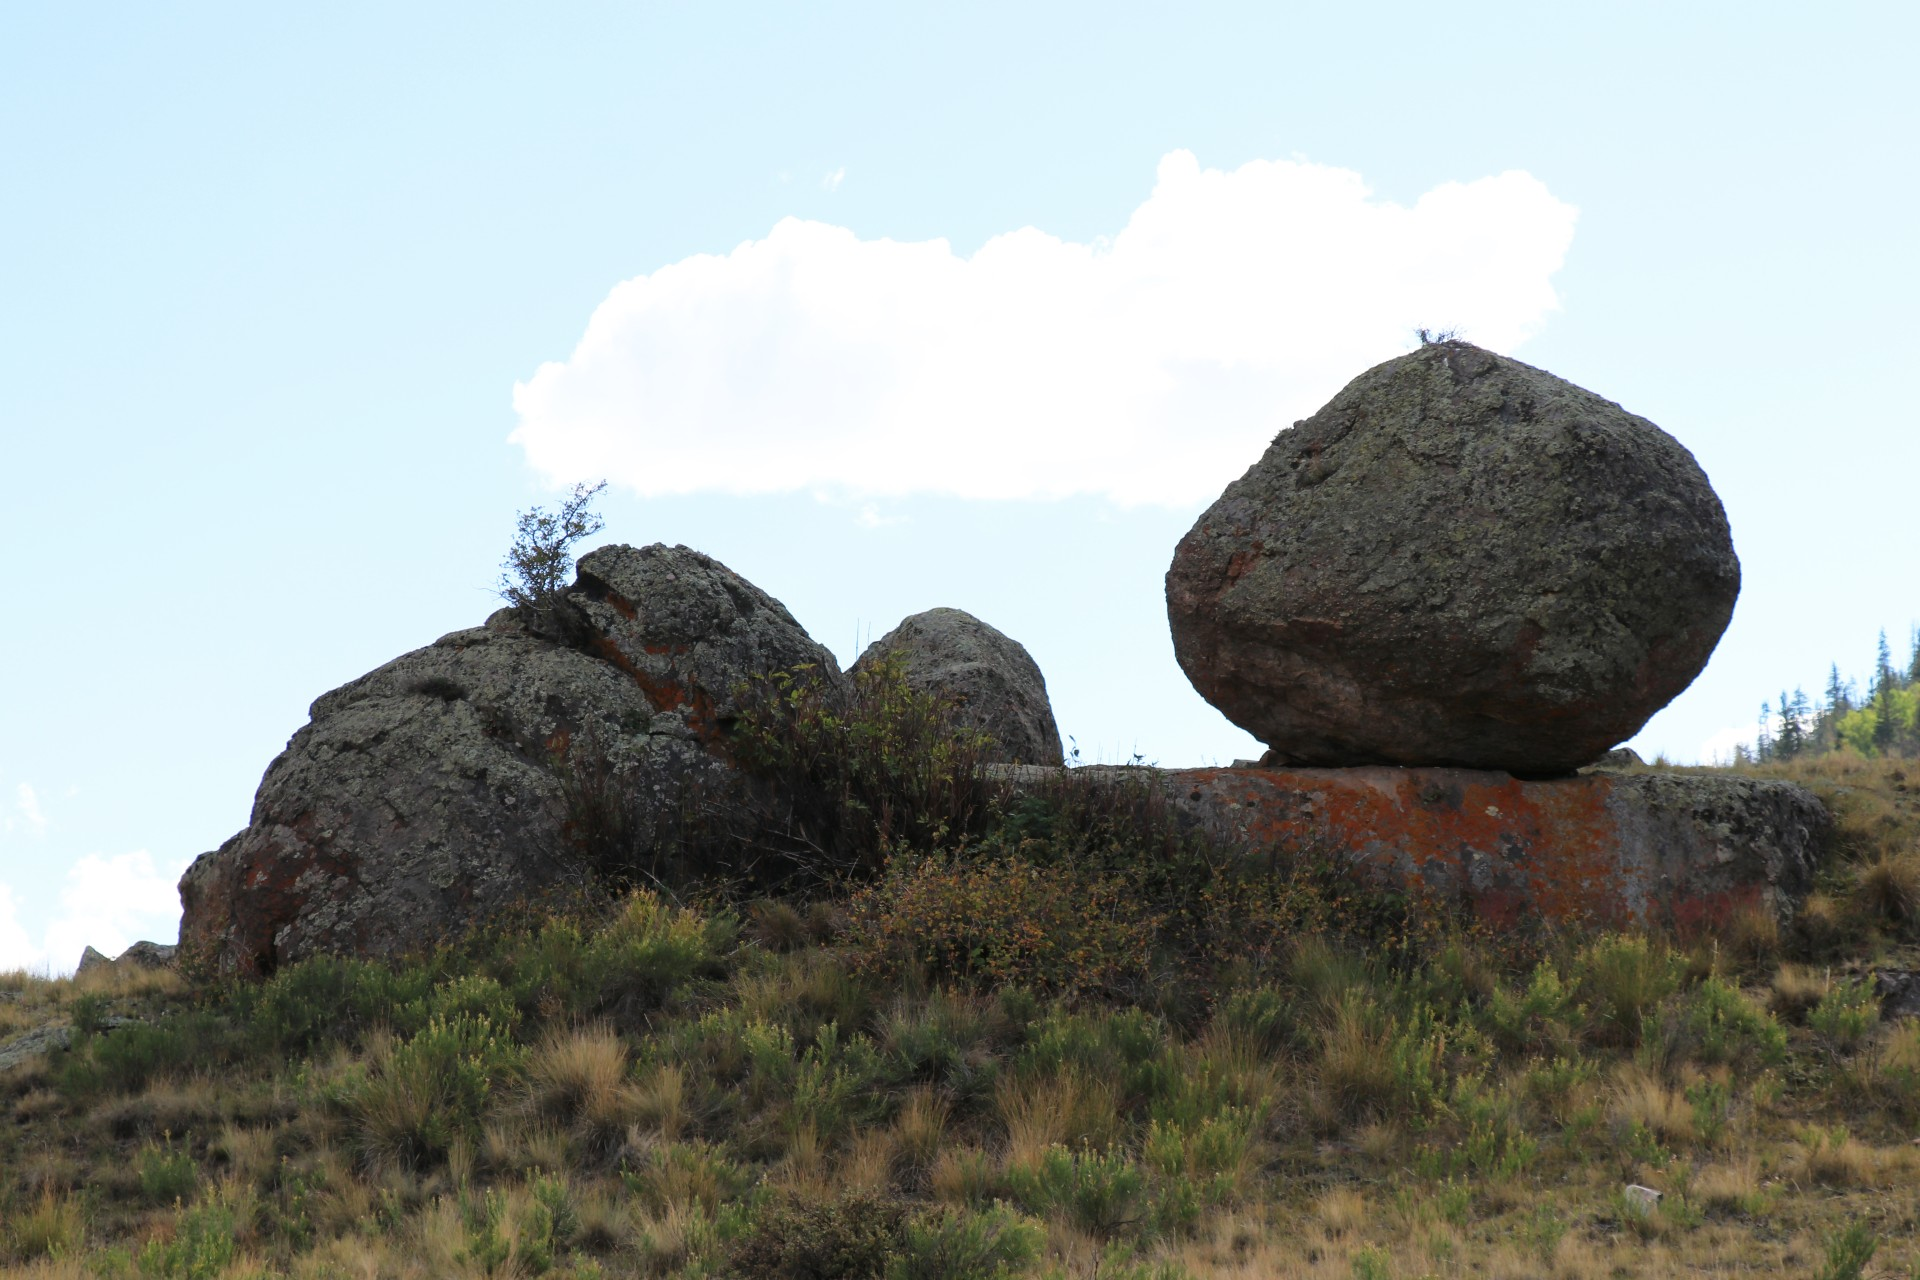 Boulders Photographed By Sara Turbyfill In Colorado.